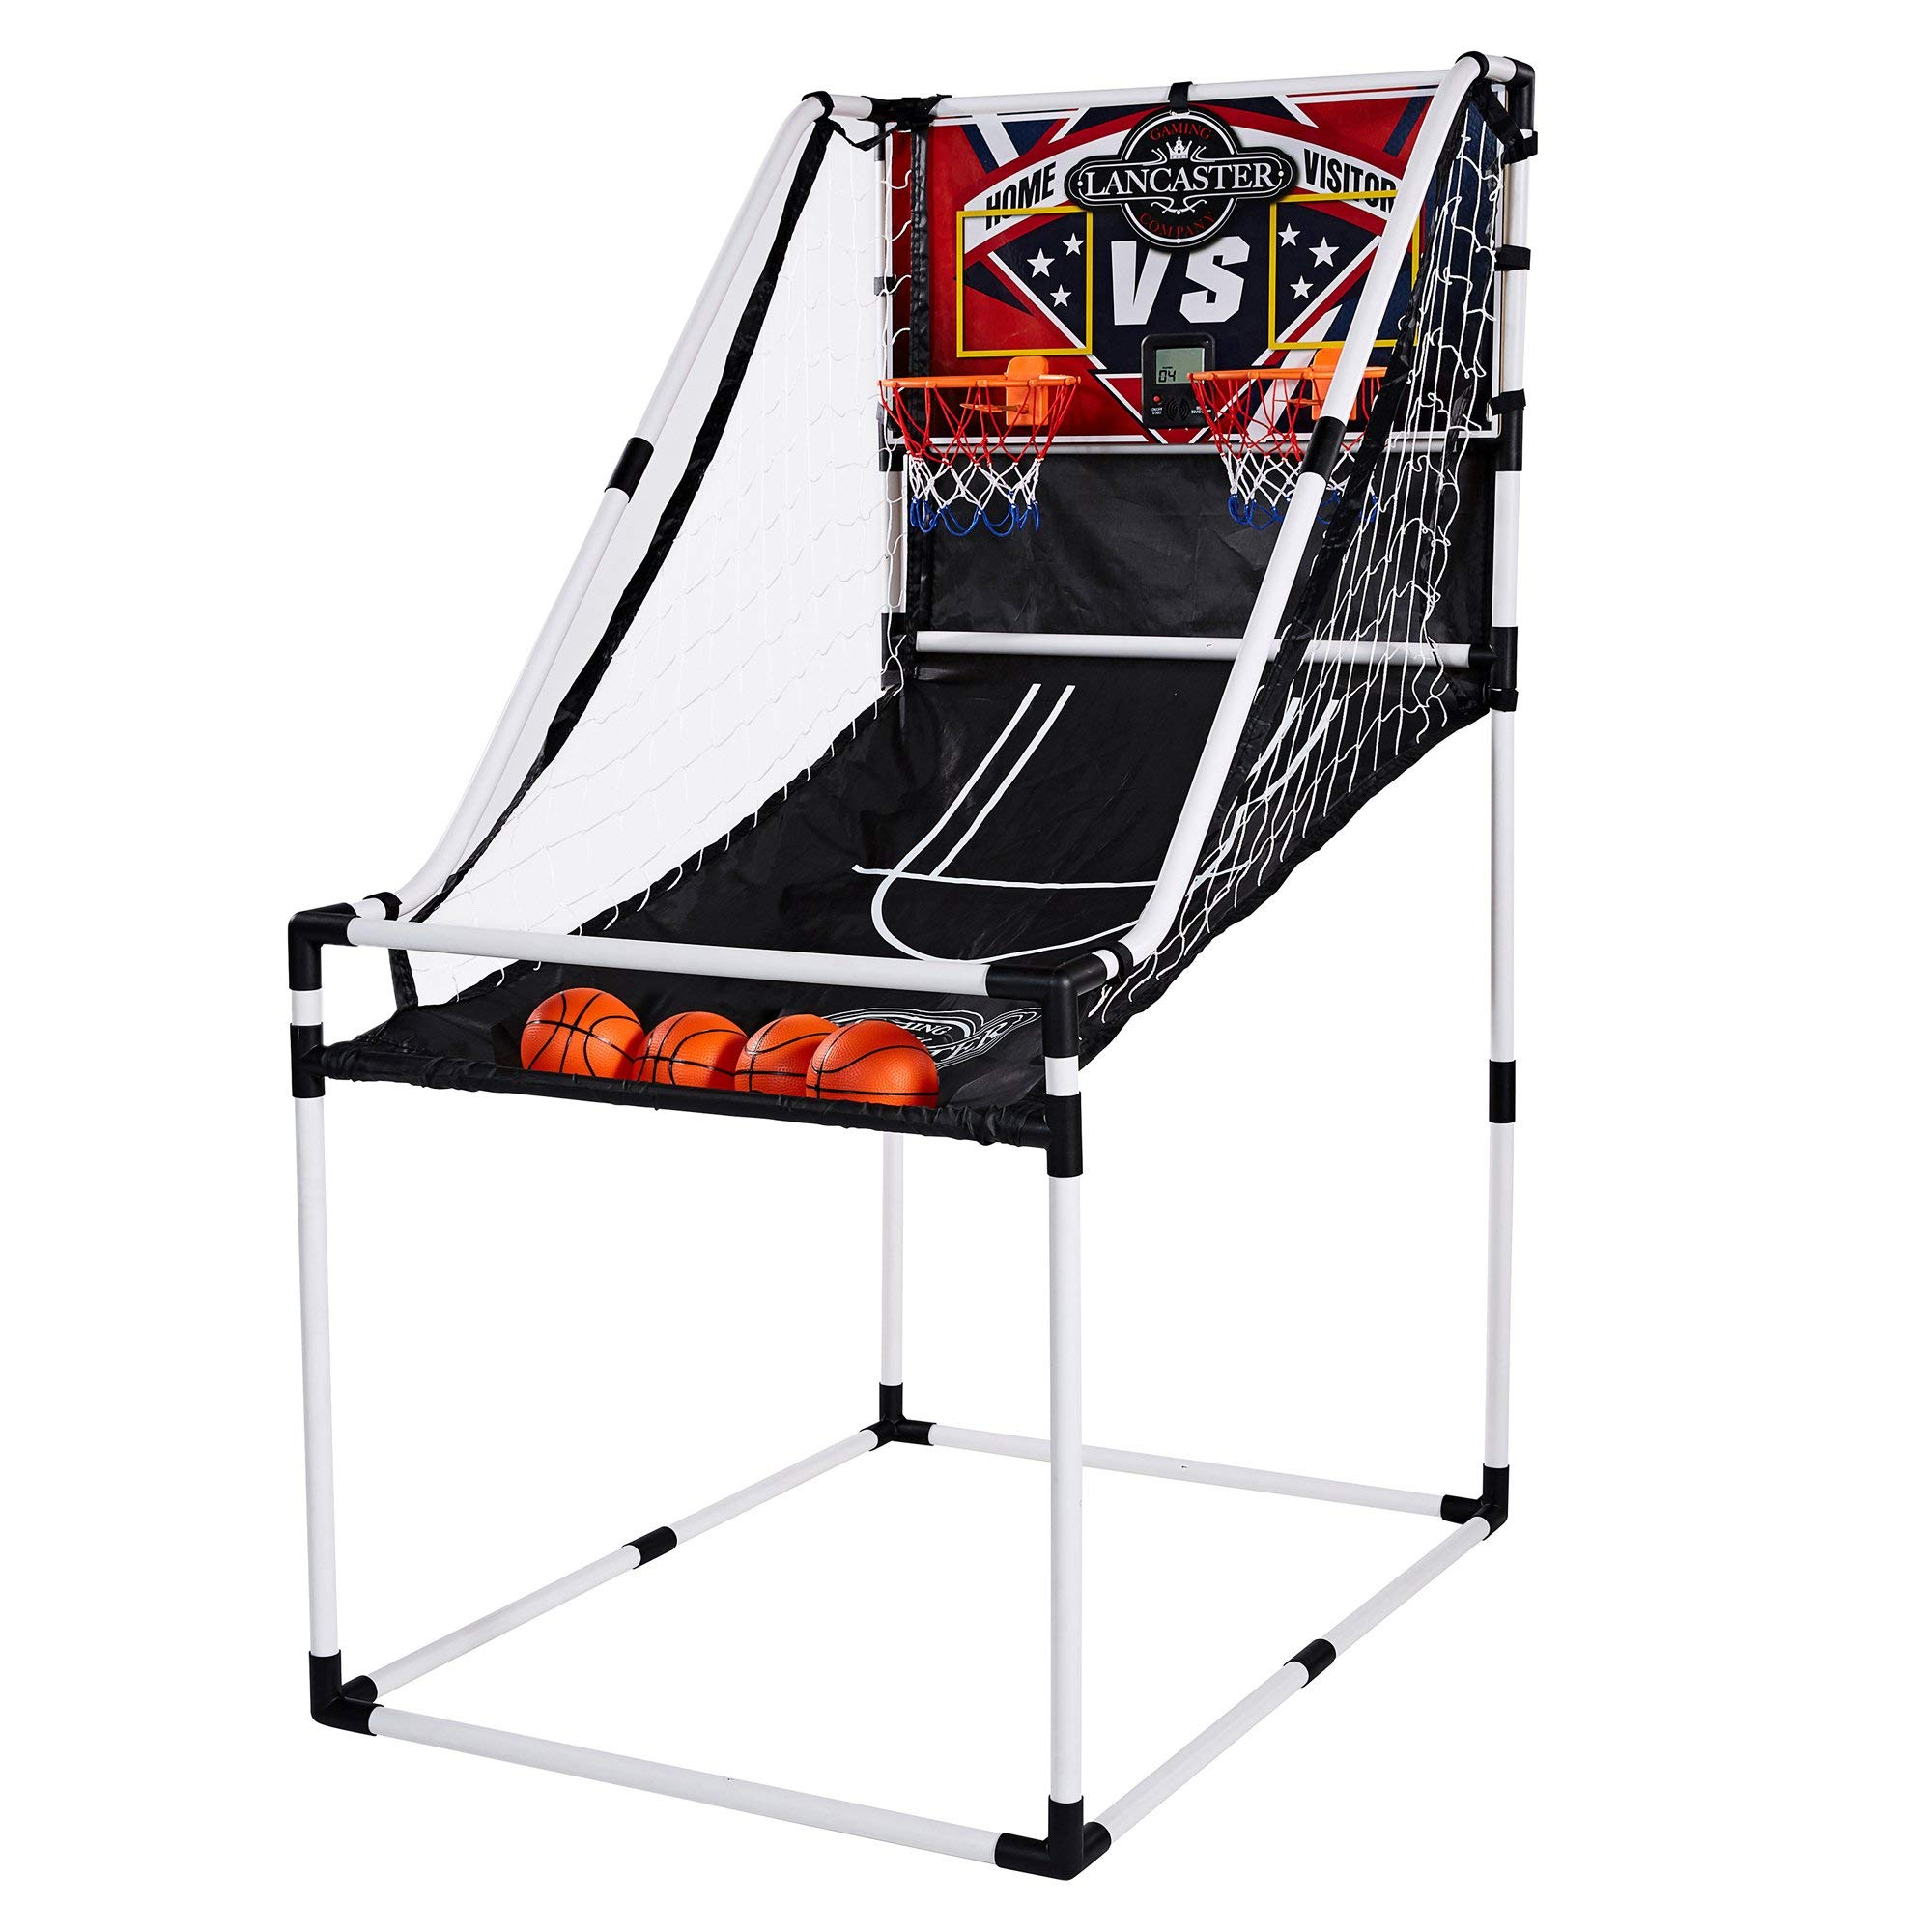 Lancaster 2 Player Junior Home Electronic Scoreboard Arcade Basketball Hoop Game by Lancaster Gaming Company